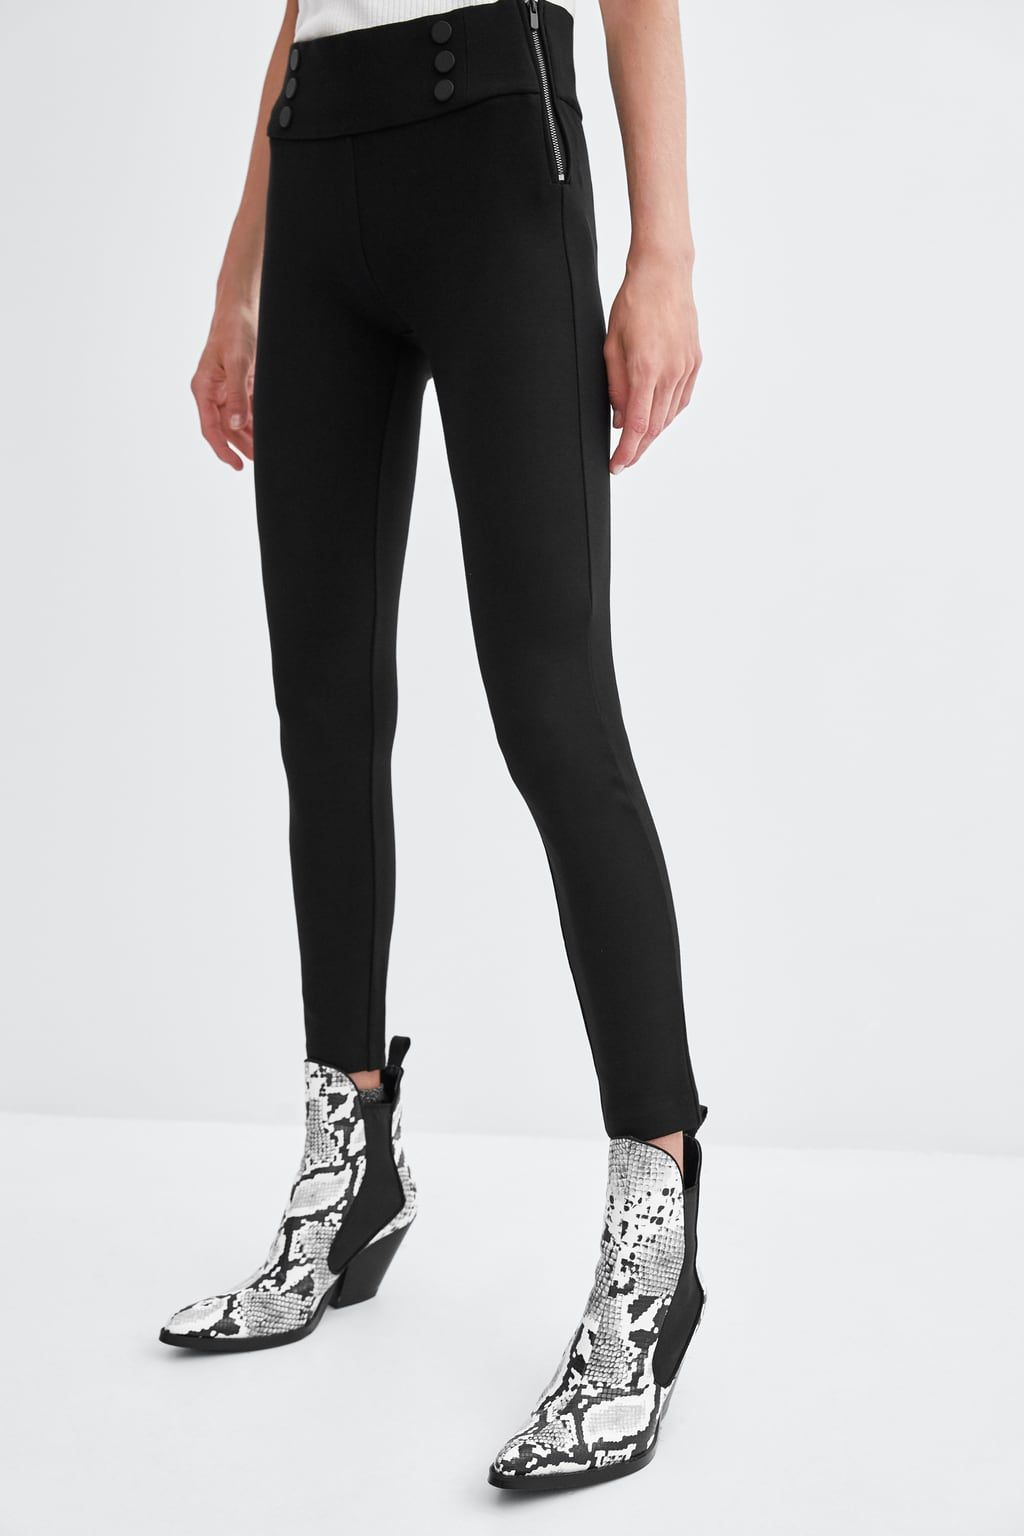 399ce0a6aeeae Image 3 of MID-RISE LEGGINGS WITH BUTTONS from Zara | Zara Wishlist ...